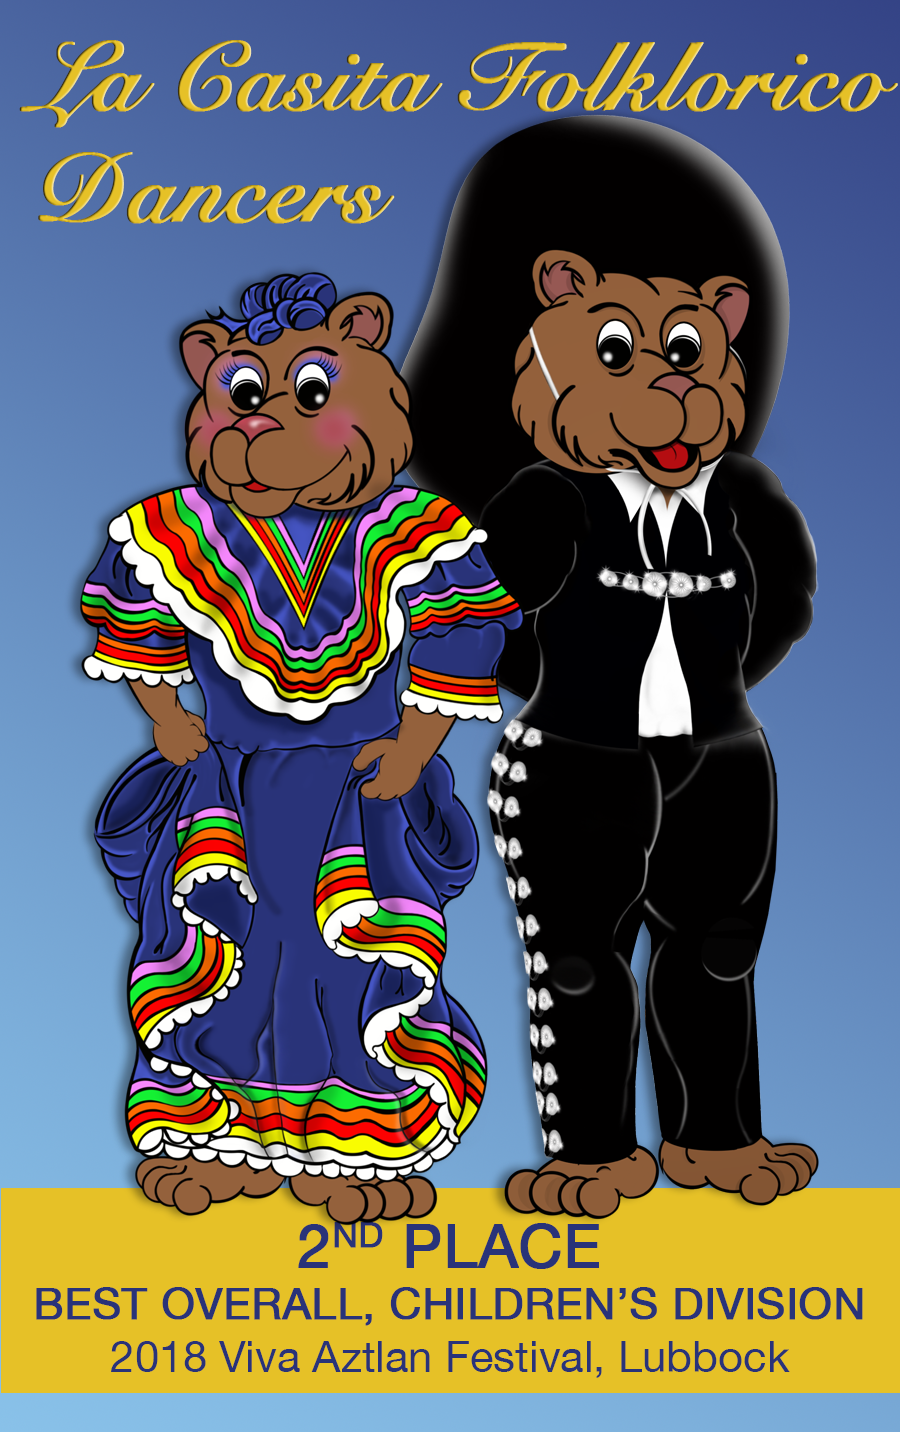 Image with text announcing placement of La Casita Folklorico at Lubbock competition